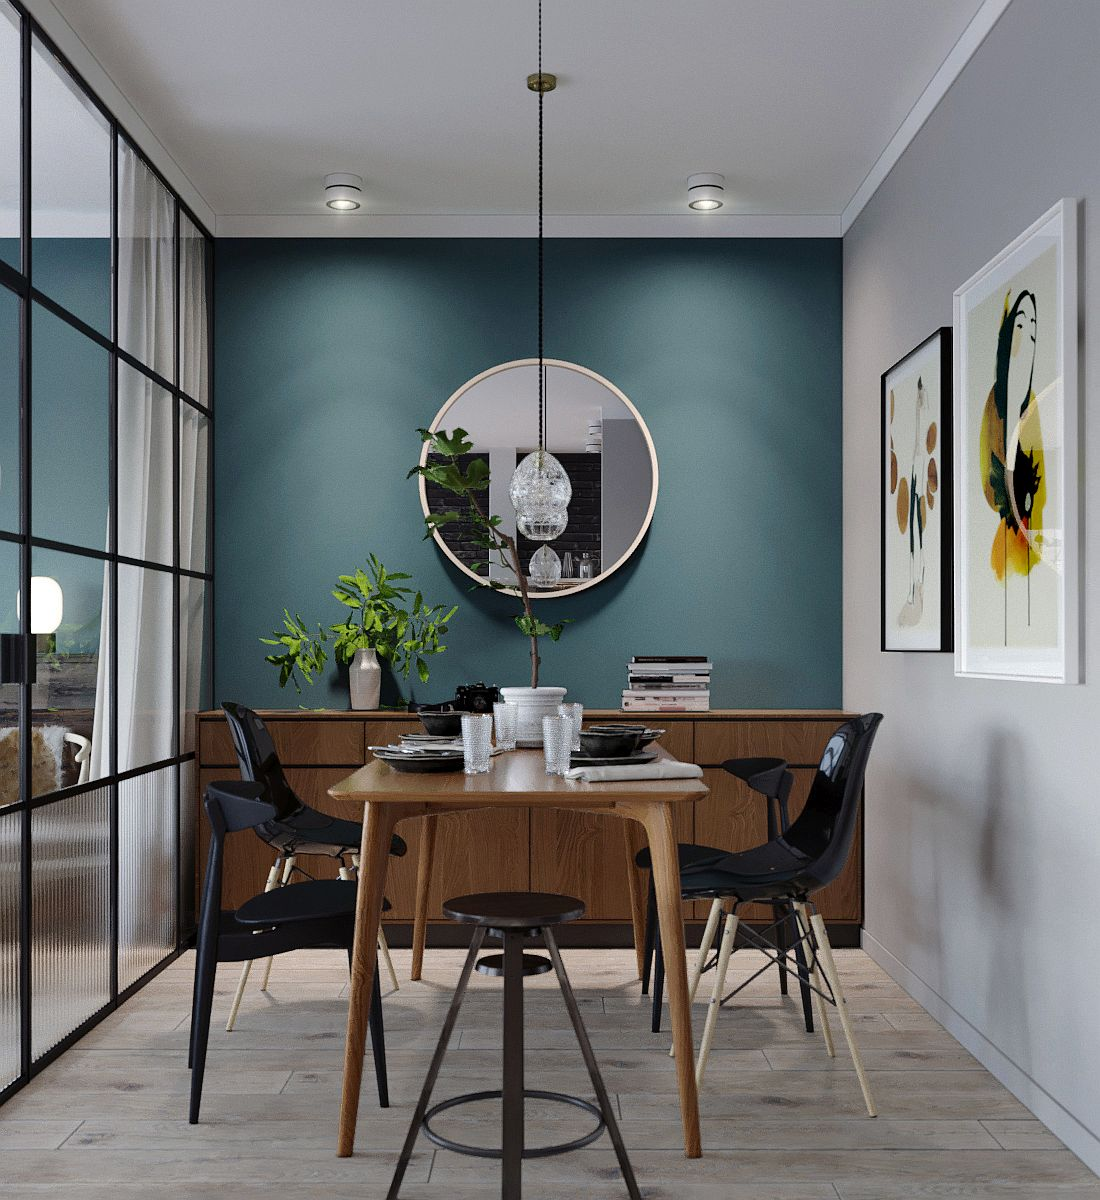 Fabulous bluish-green accent wall is a part of boh the bedroom and the living room